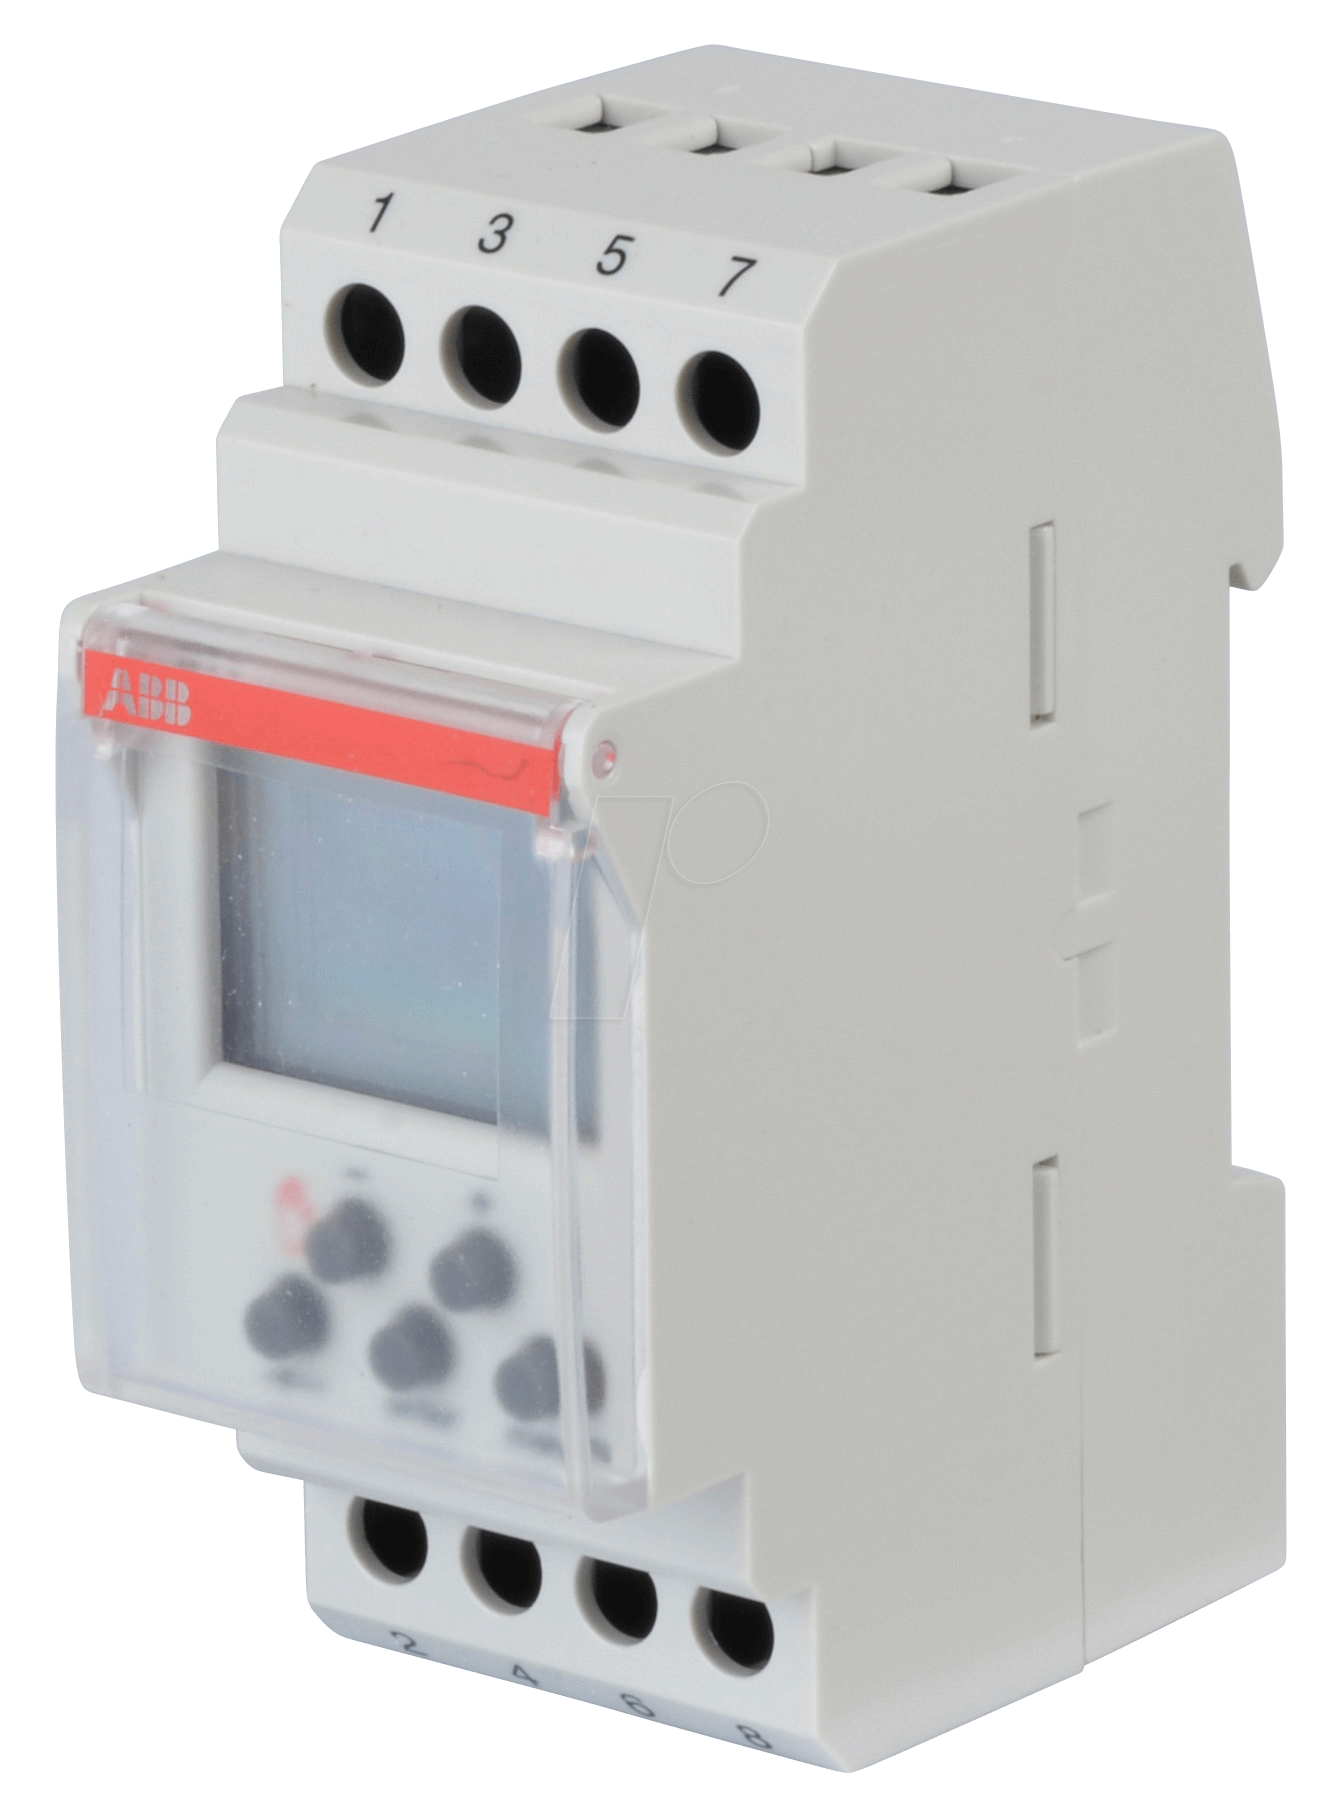 Abb Dt1 Digital Timer 1 Changeover Contact 16 A Channel At Circuit Breaker With